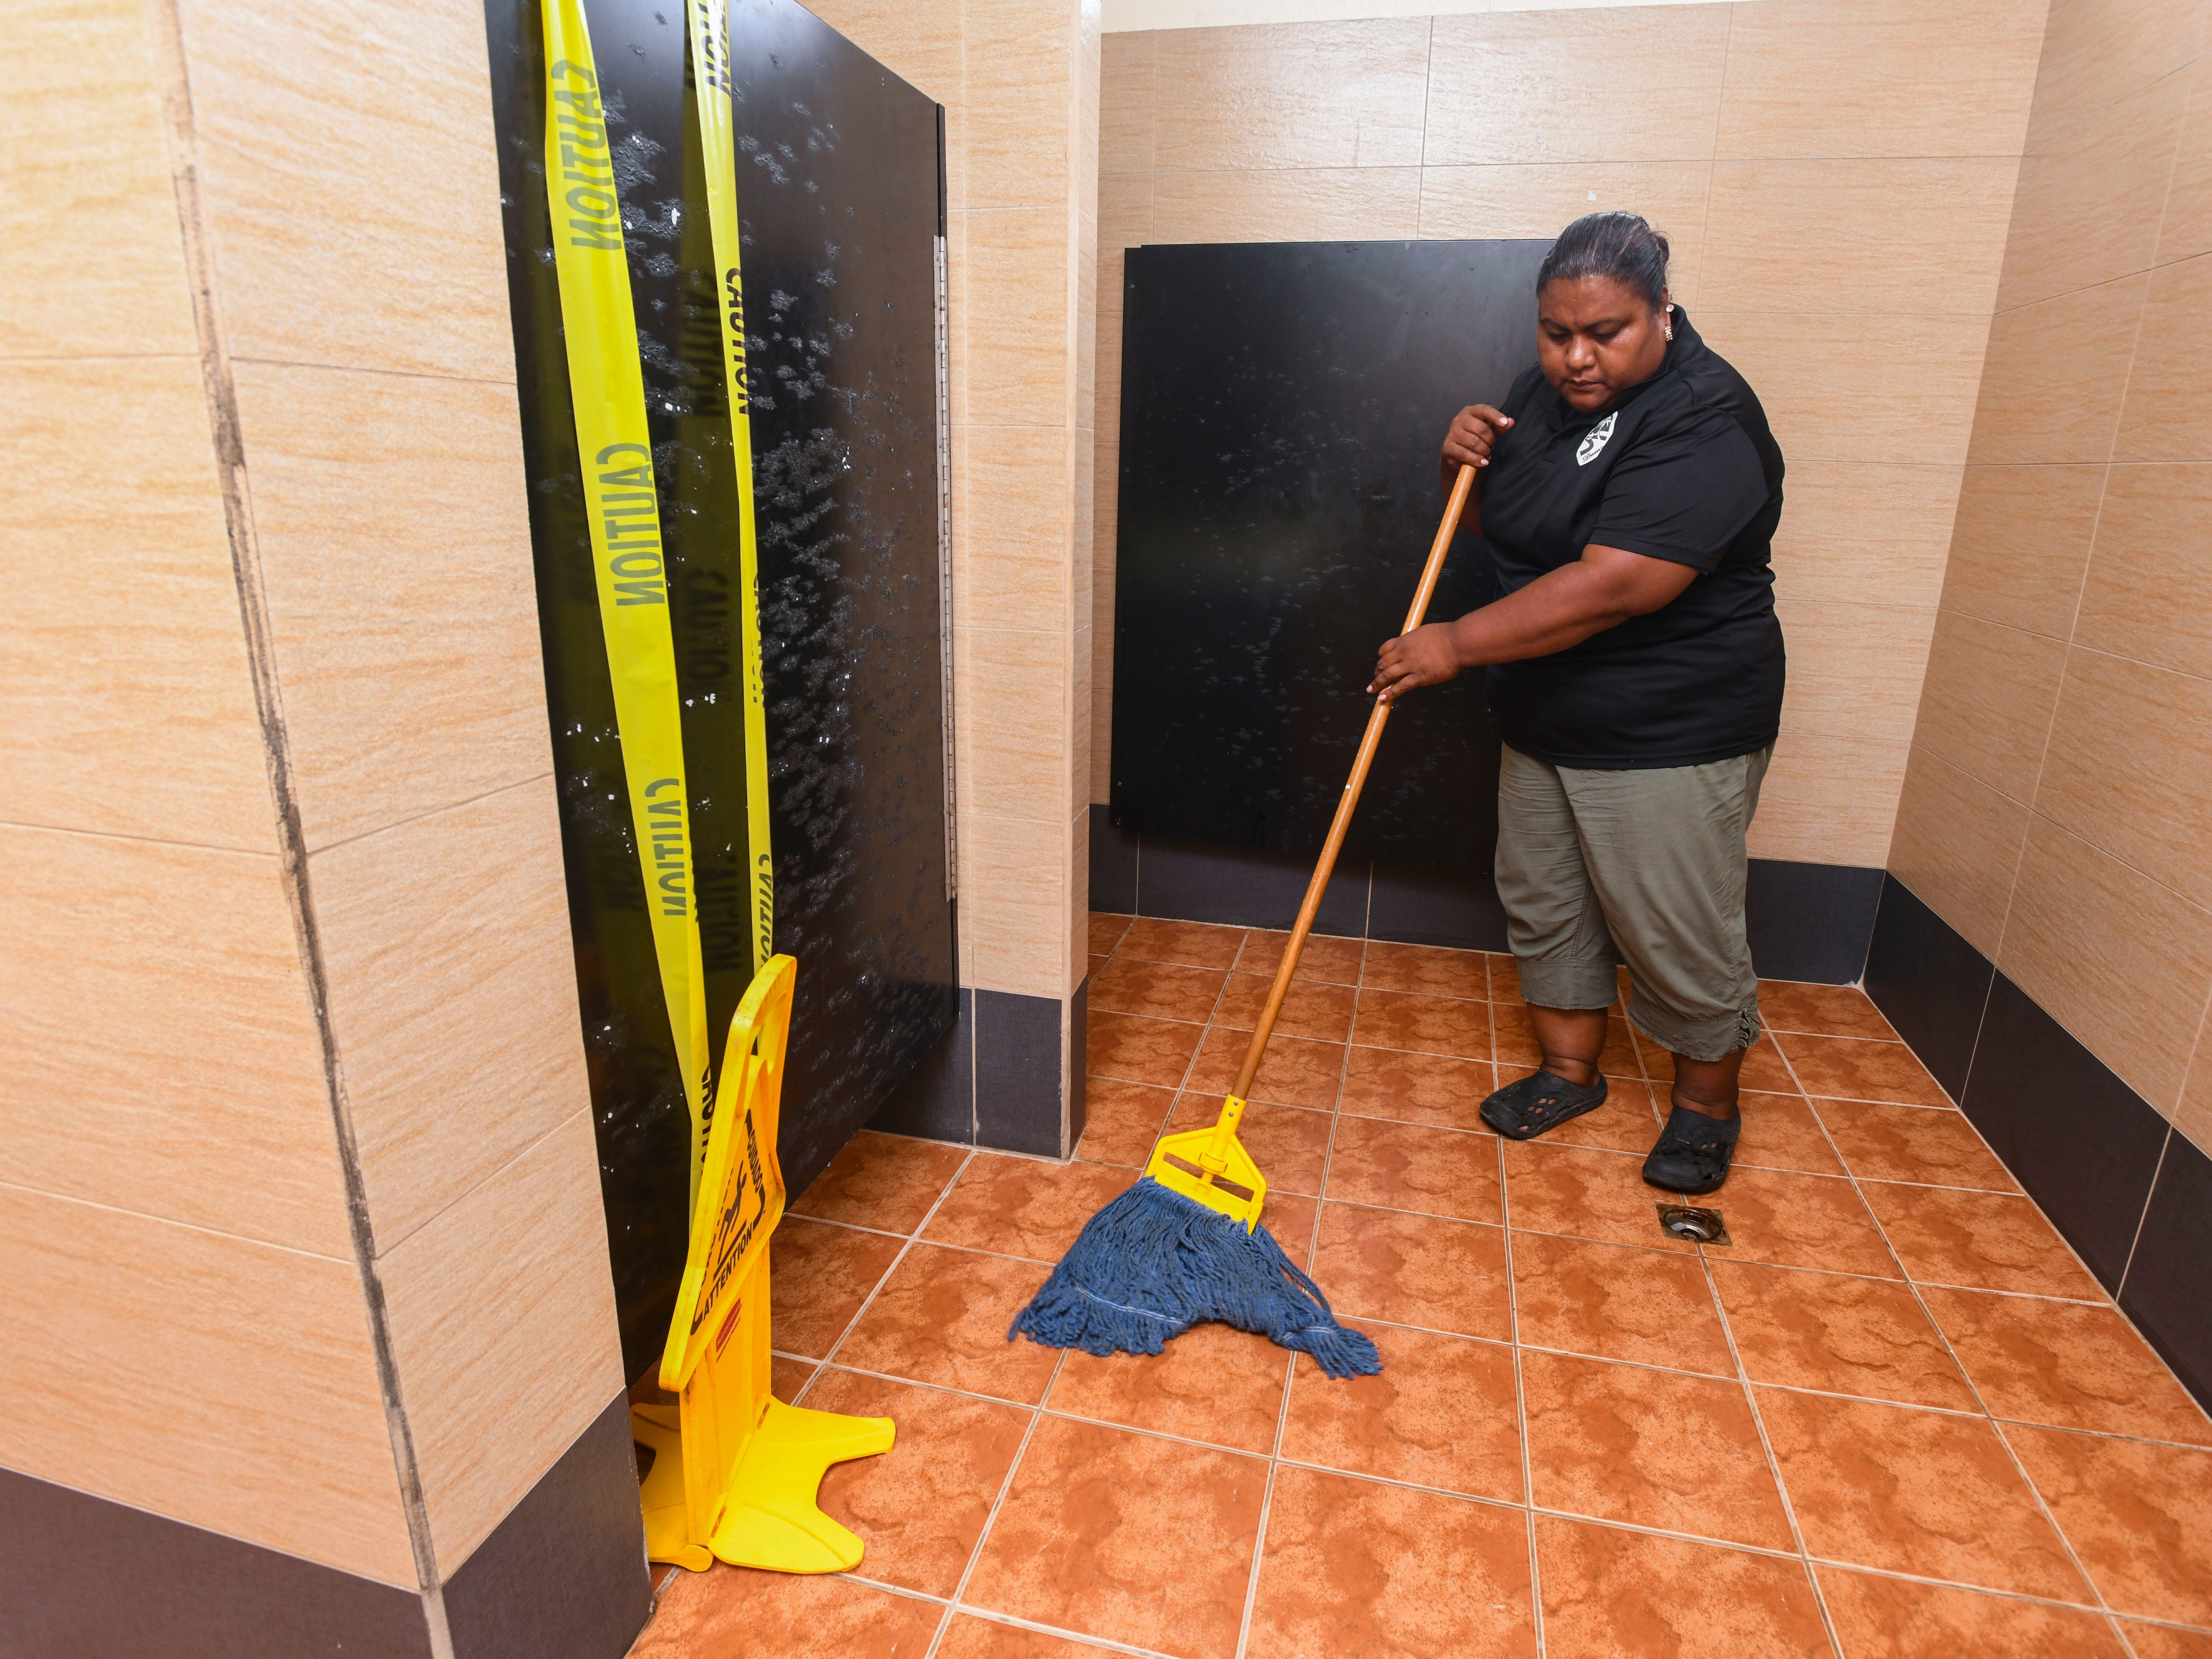 Yellow caution tape warns patrons of a non-working toilet stall as Dom's Maintenance worker Ren Esiel cleans within the women's restroom facility, near the Inarajan Natural Pools, on Thursday, May 16, 2019. Since May 1, the maintenance company has provided a worker to supply the restrooms and maintain the daily upkeep of the building from 9:00 a.m. to 5:00 p.m., said owner Dominic San Gil. But due to a minor plumbing issue, the stall was closed off until repairs can be performed by Department of Parks and Recreation personnel, San Gil added.